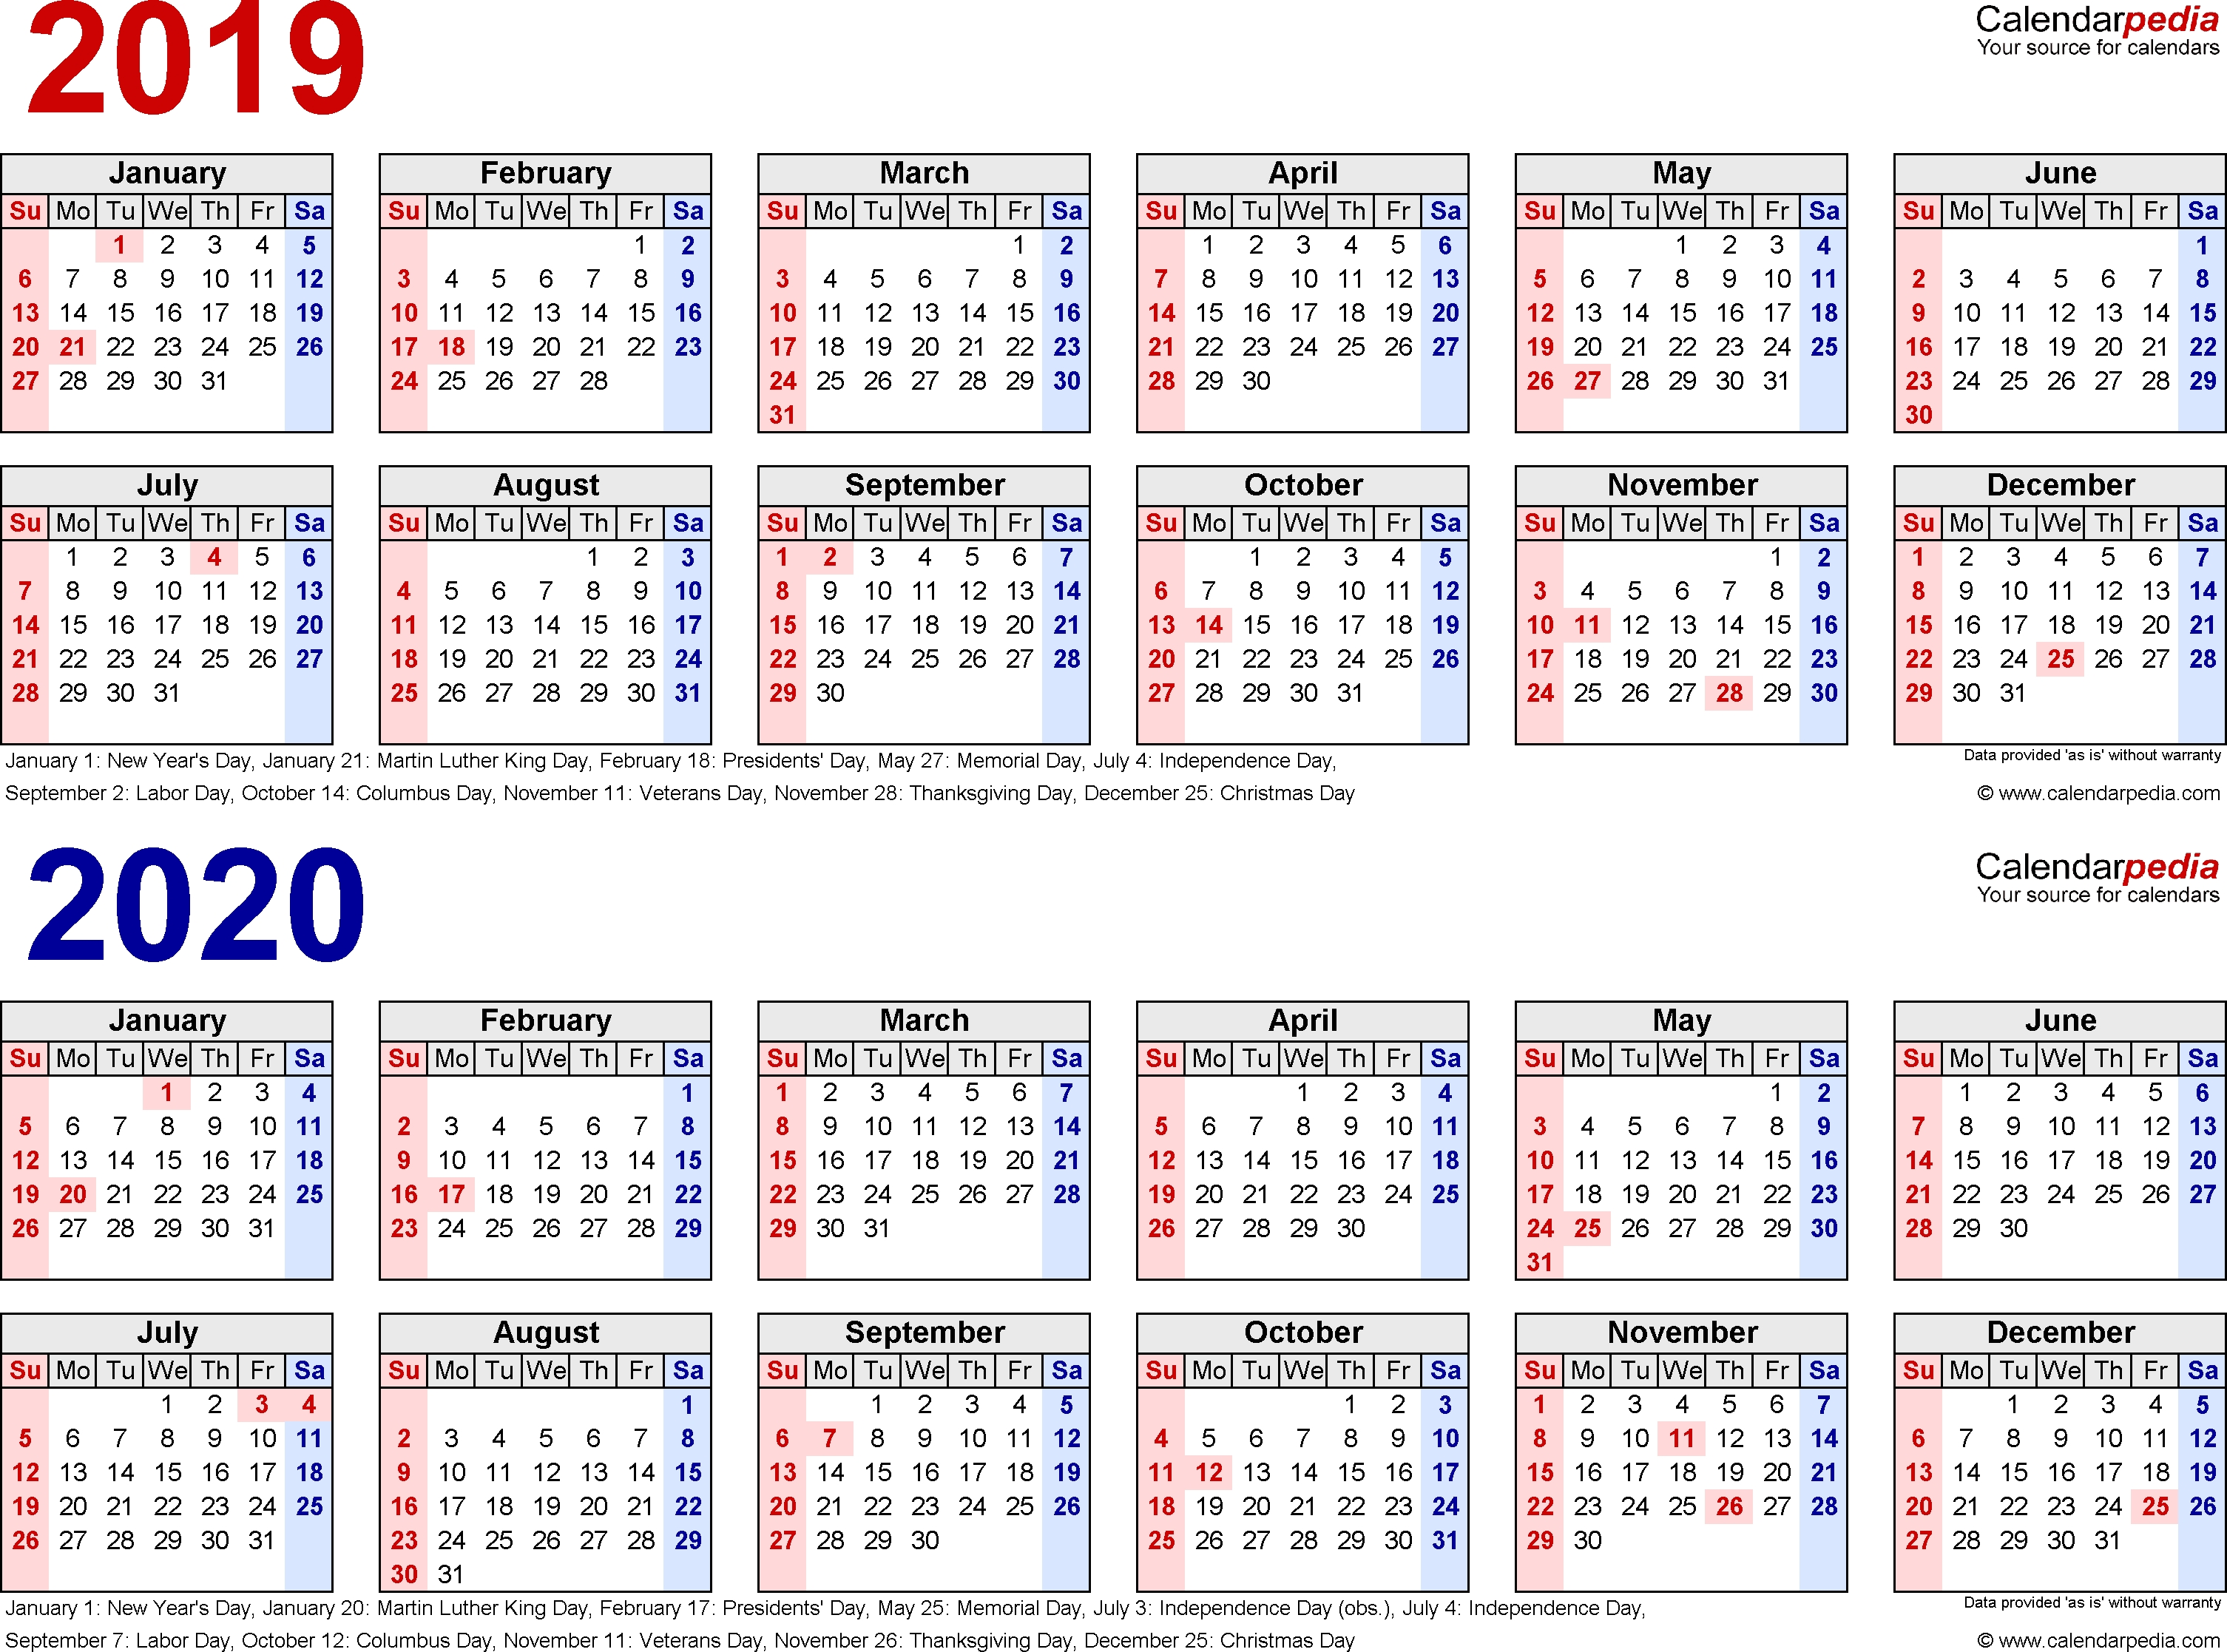 2019-2020 Calendar - Free Printable Two-Year Excel Calendars-Template For Philippine Calendar 2020